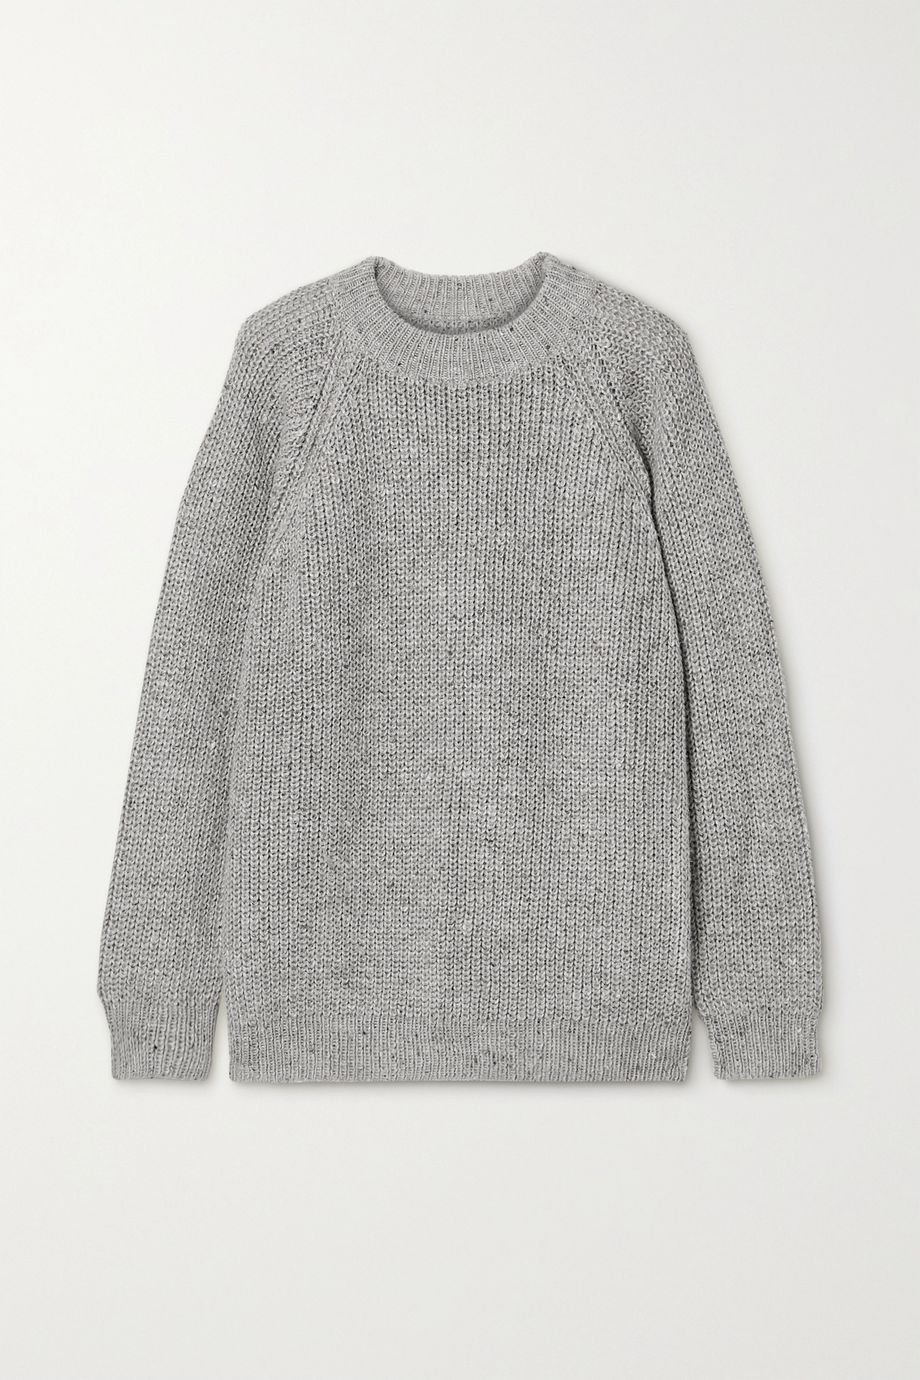 Lauren Manoogian Shaker knitted sweater